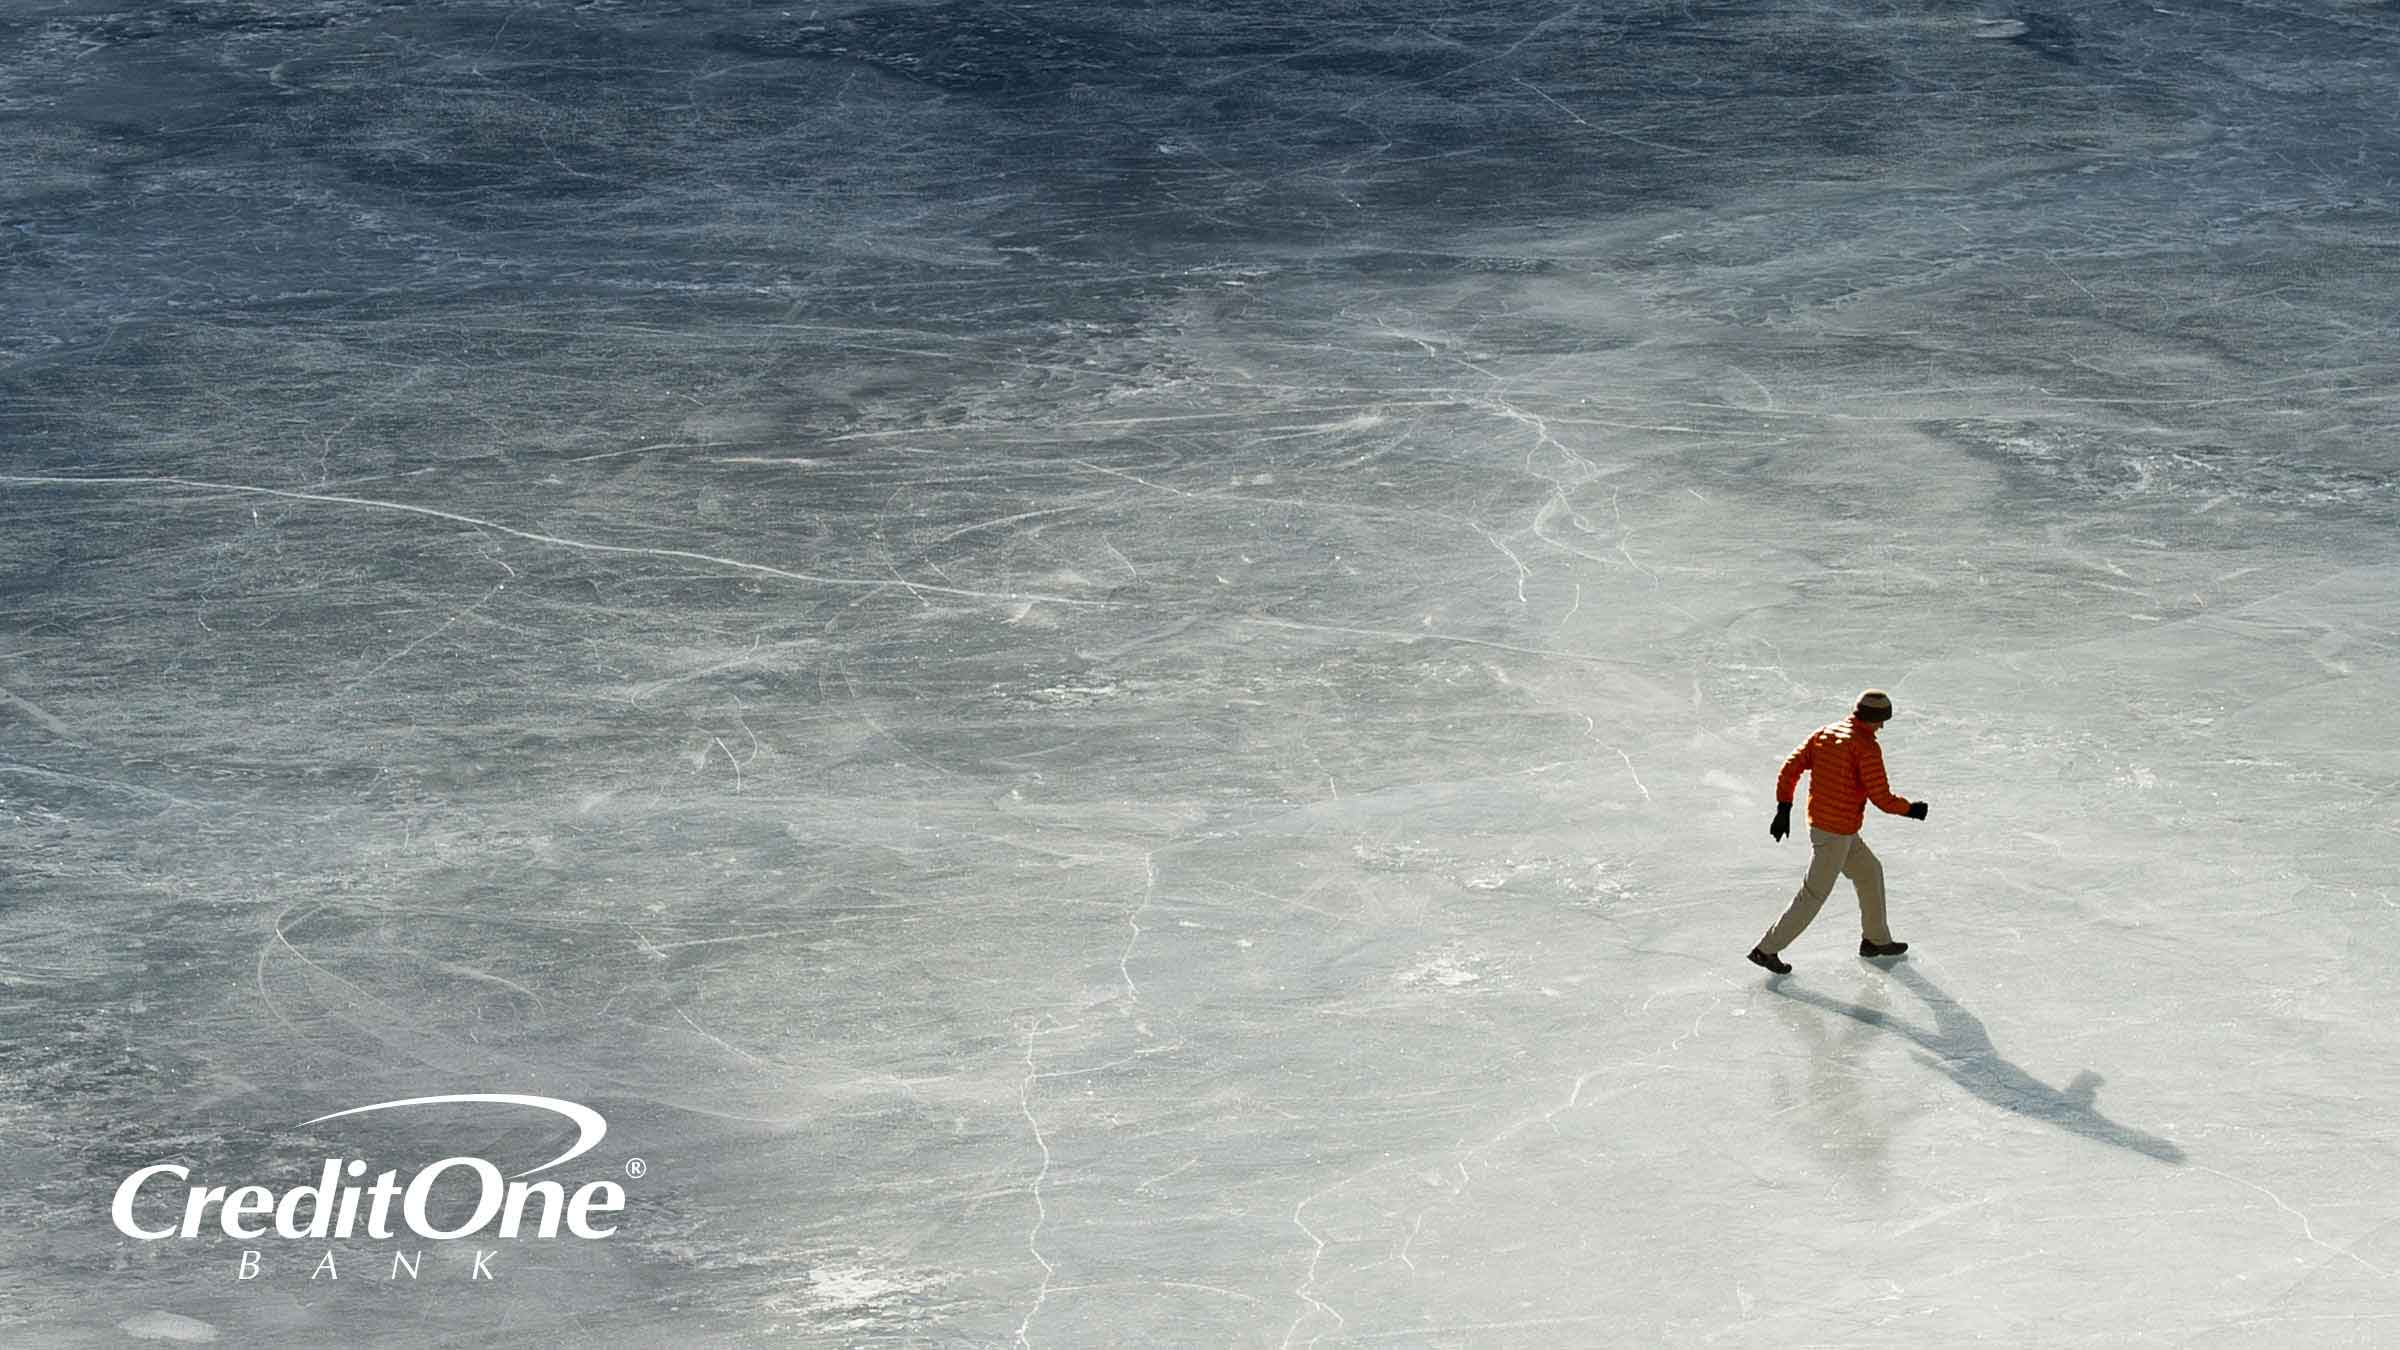 Skating on thin ice – the value of freezing your credit reports